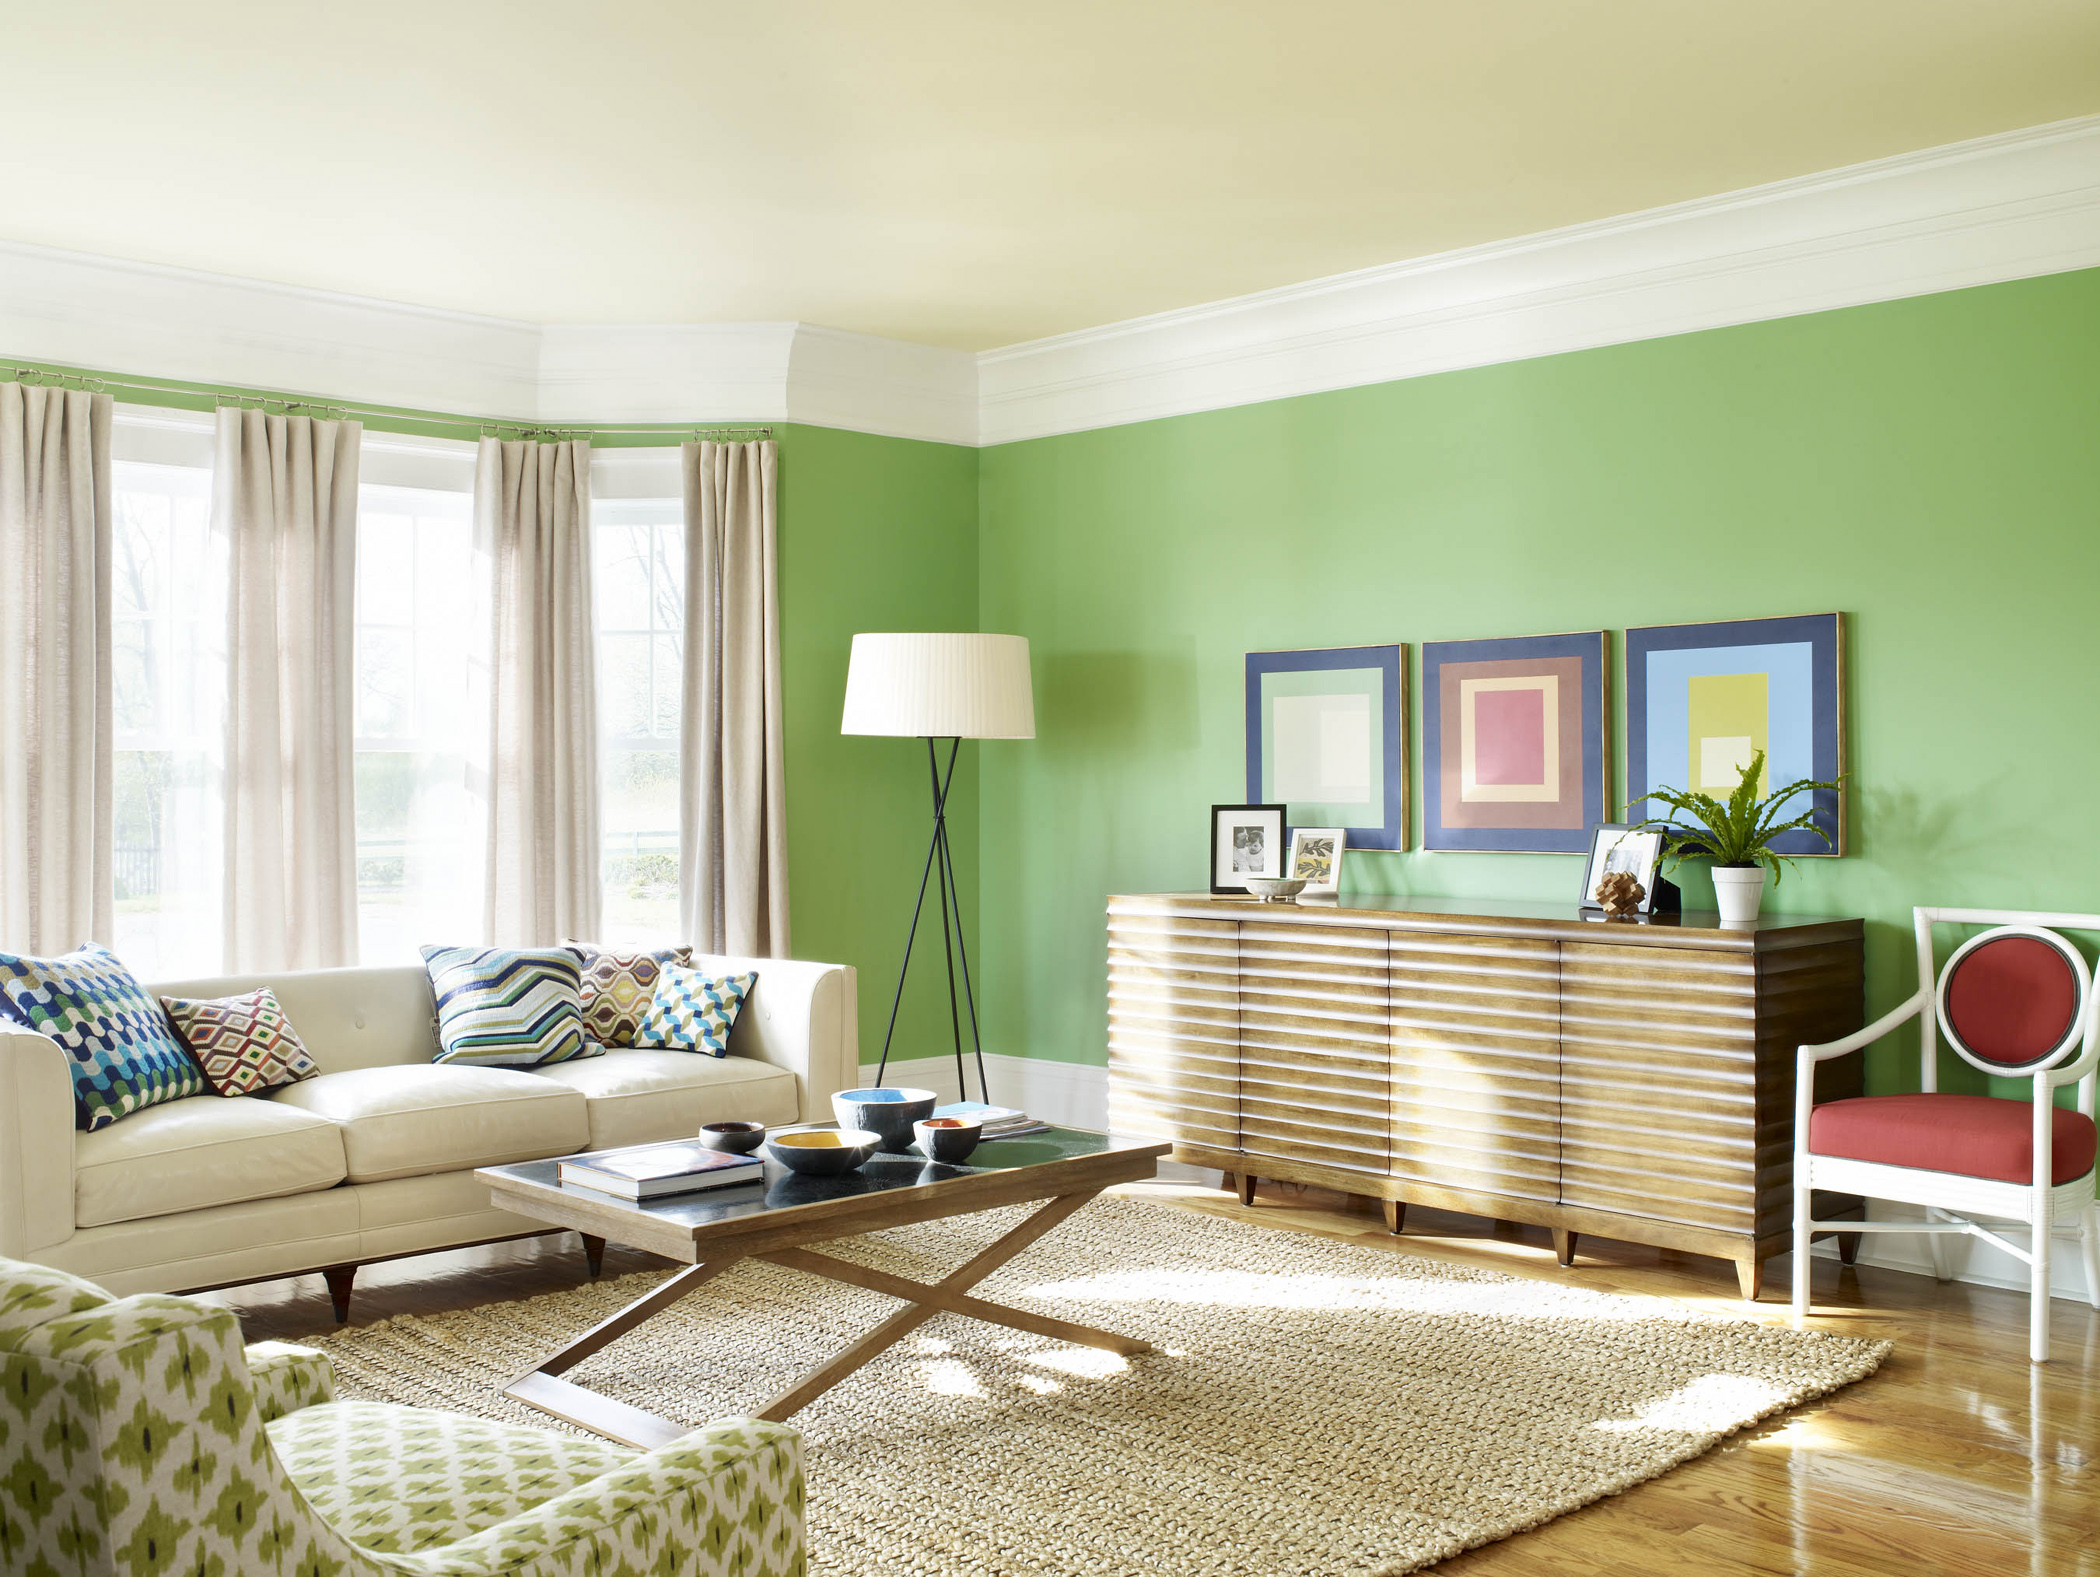 Decorating Ideas For Living Room With Green Wall (Image 5 of 10)